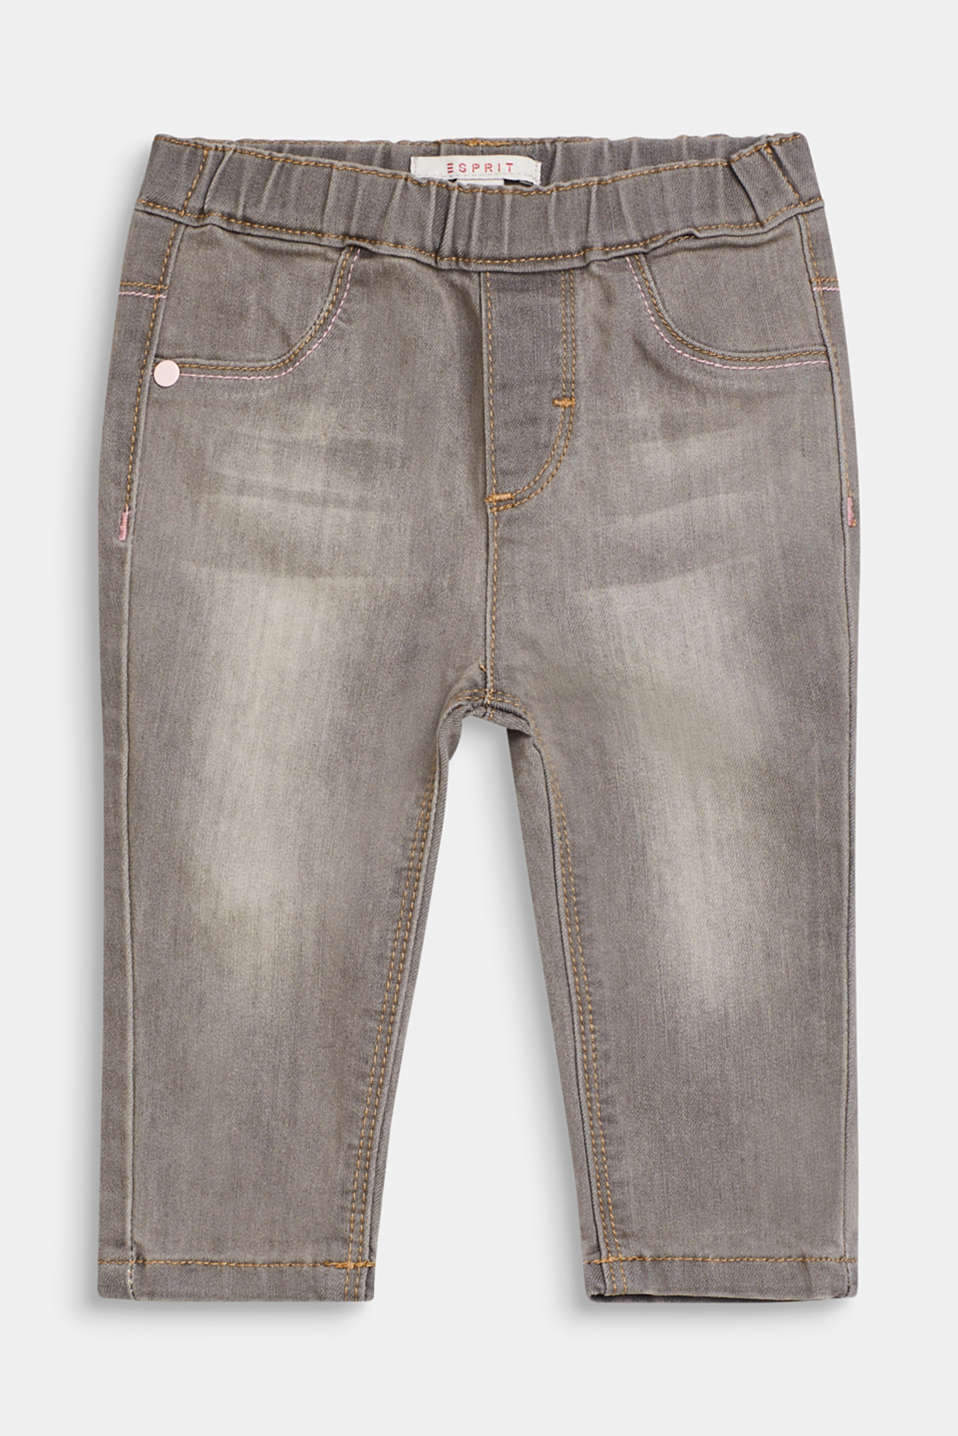 Esprit - Stretch jeans with elasticated waistband